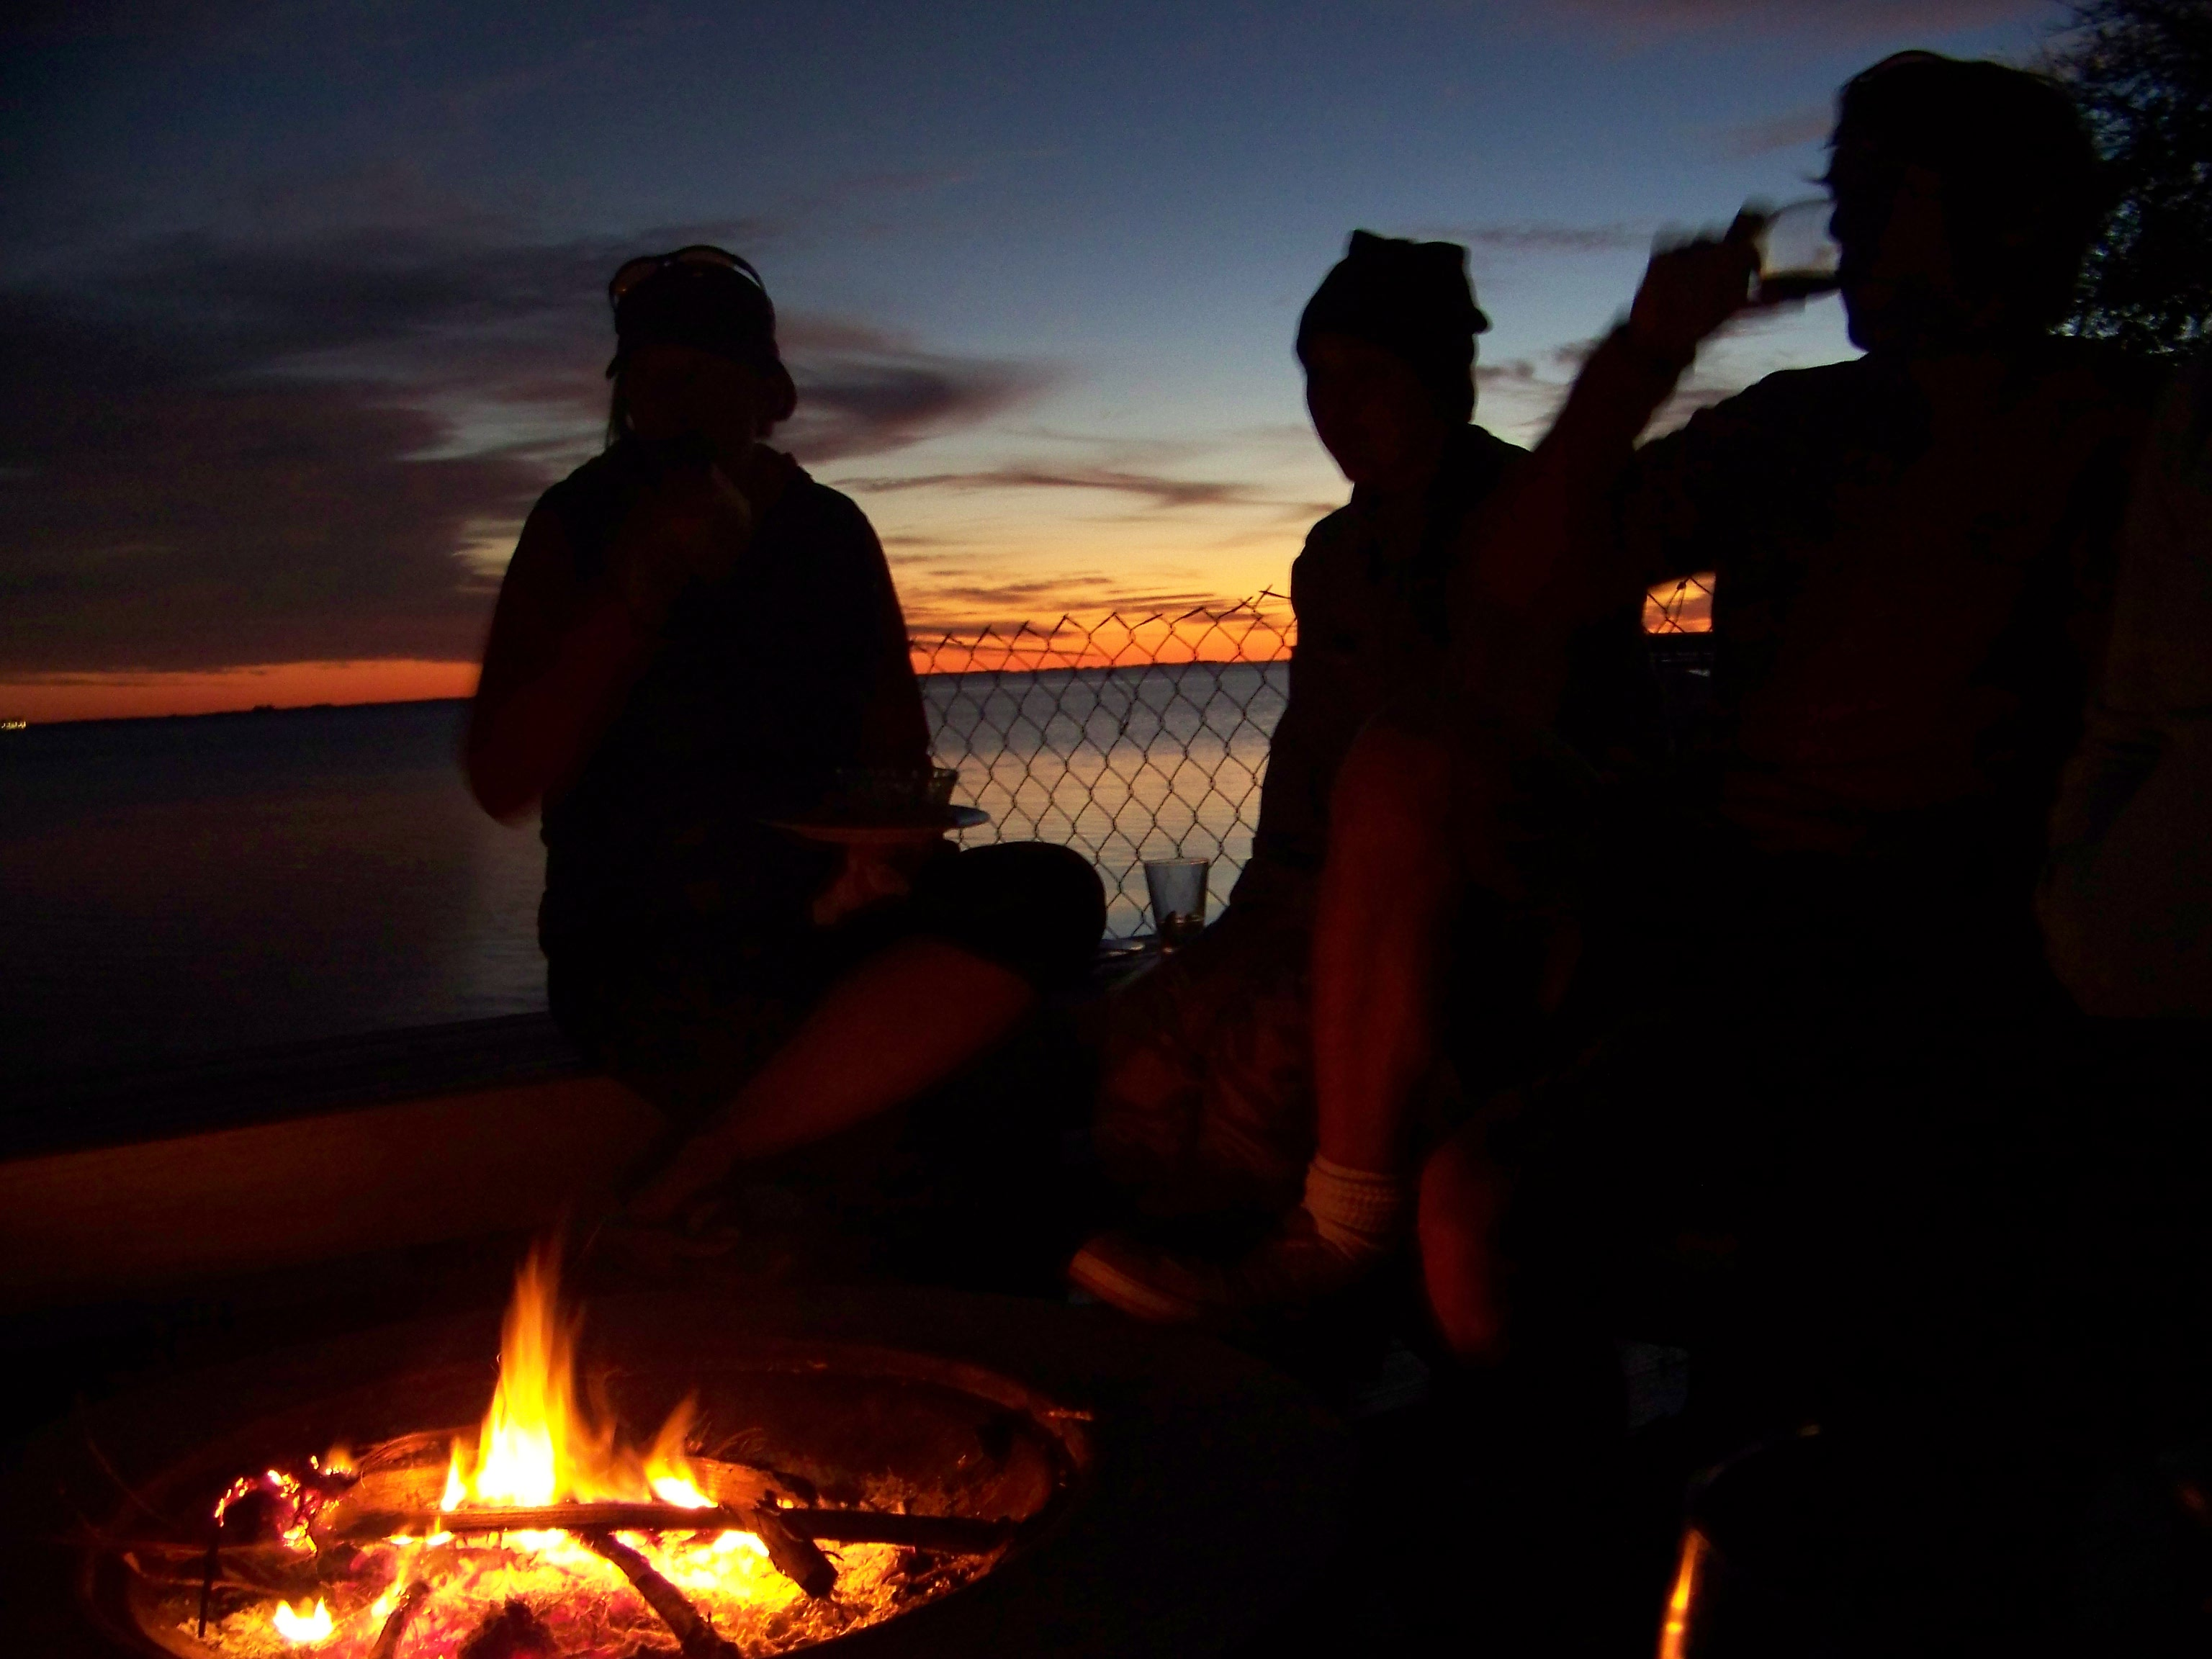 Party at sunset, silhouettes around the ca===pfire